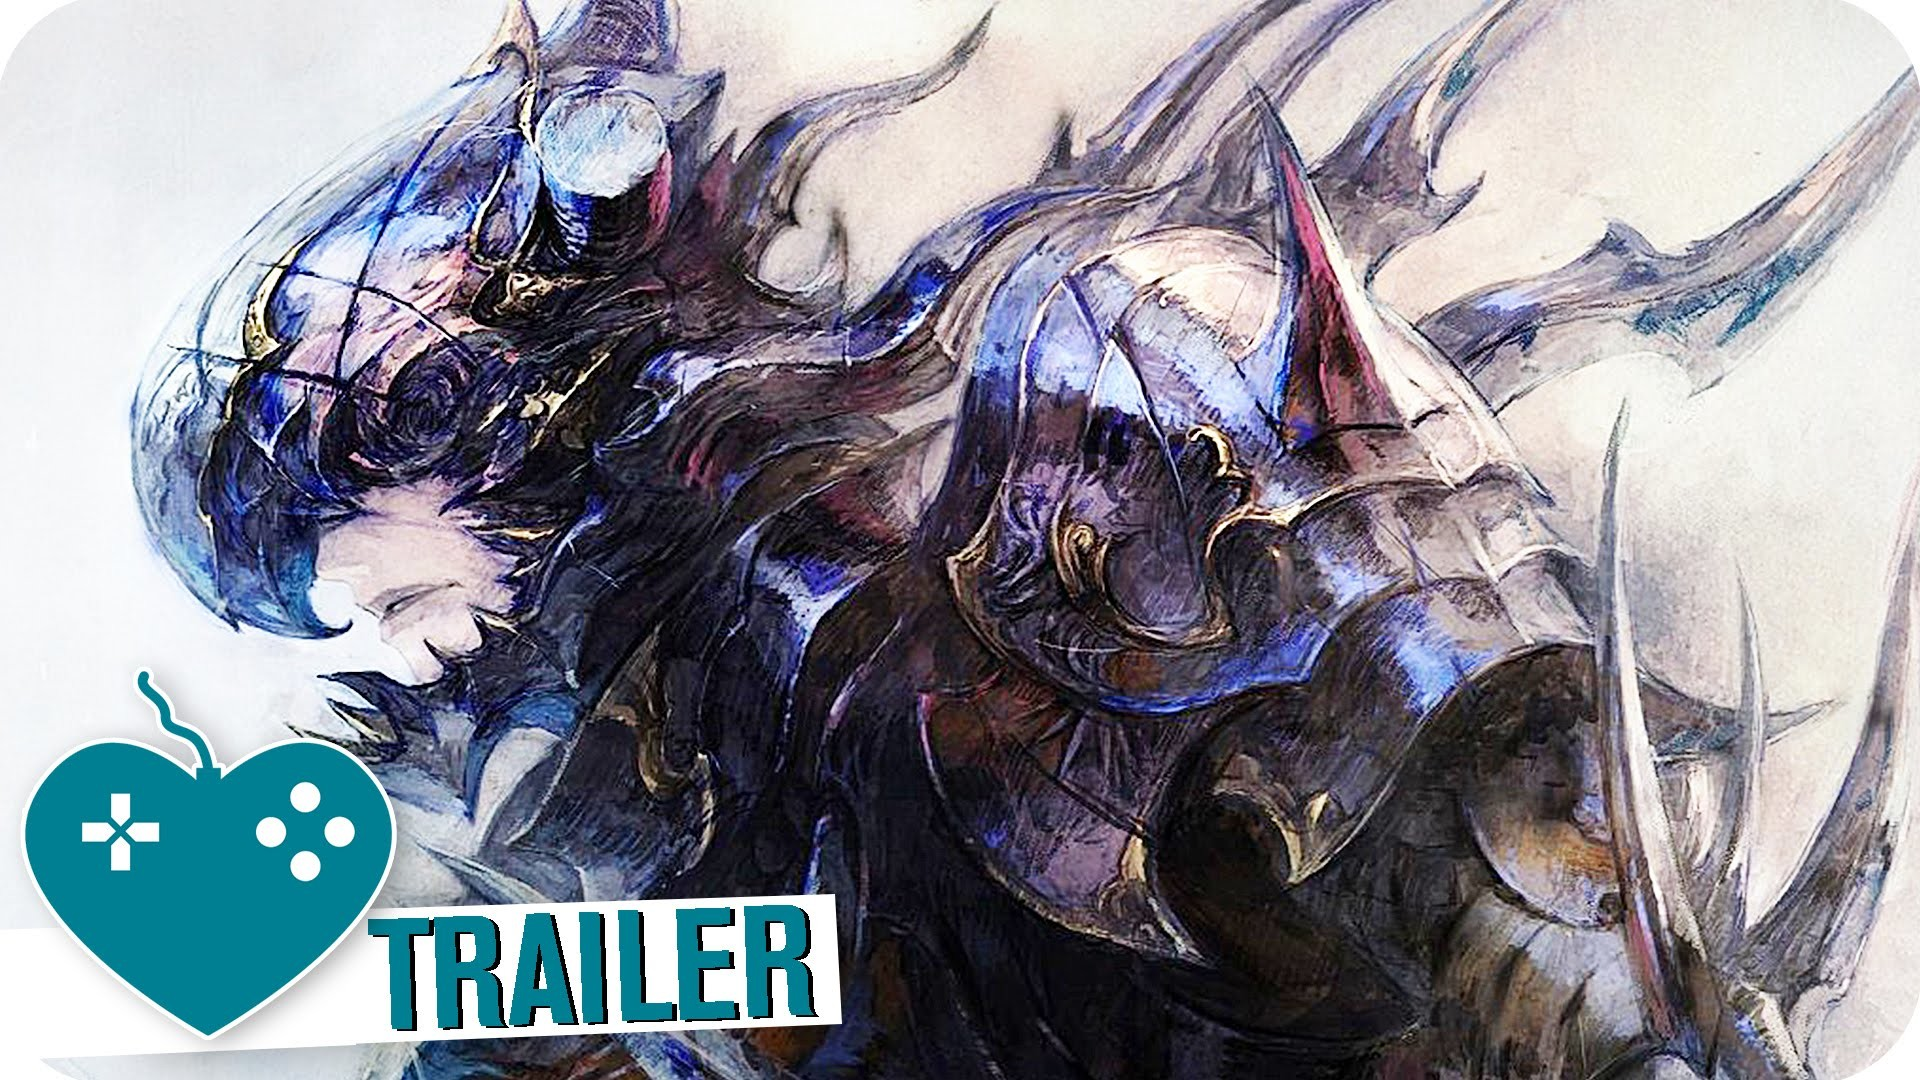 FINAL FANTASY XIV: HEAVENSWARD Patch 3.3 Revenge of the Horde Trailer  (2016) PS4, PS3, PC – YouTube